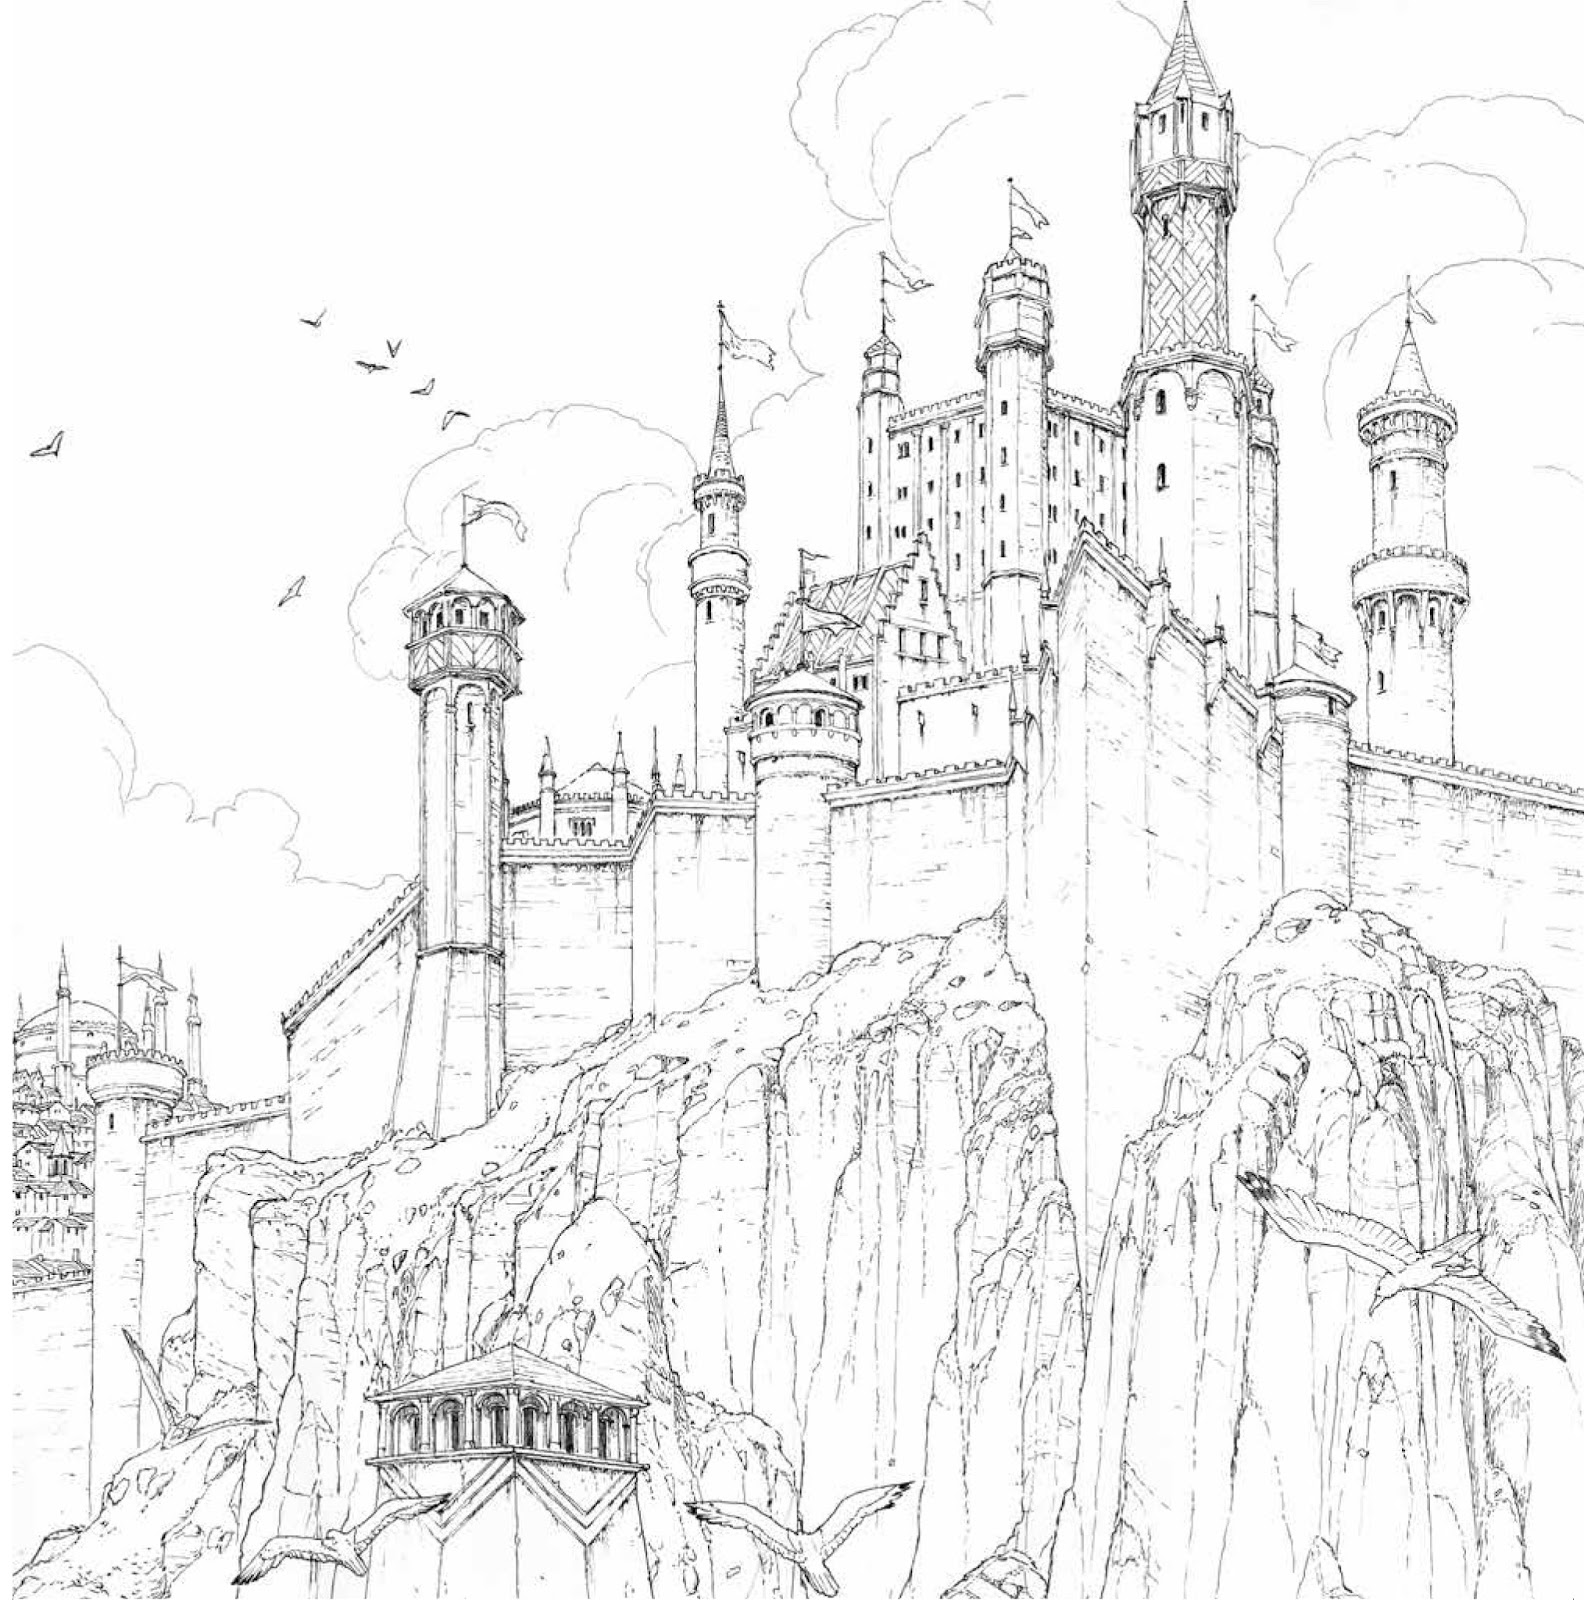 DYWYHSM: wishlist: The Official A Game of Thrones Coloring Book